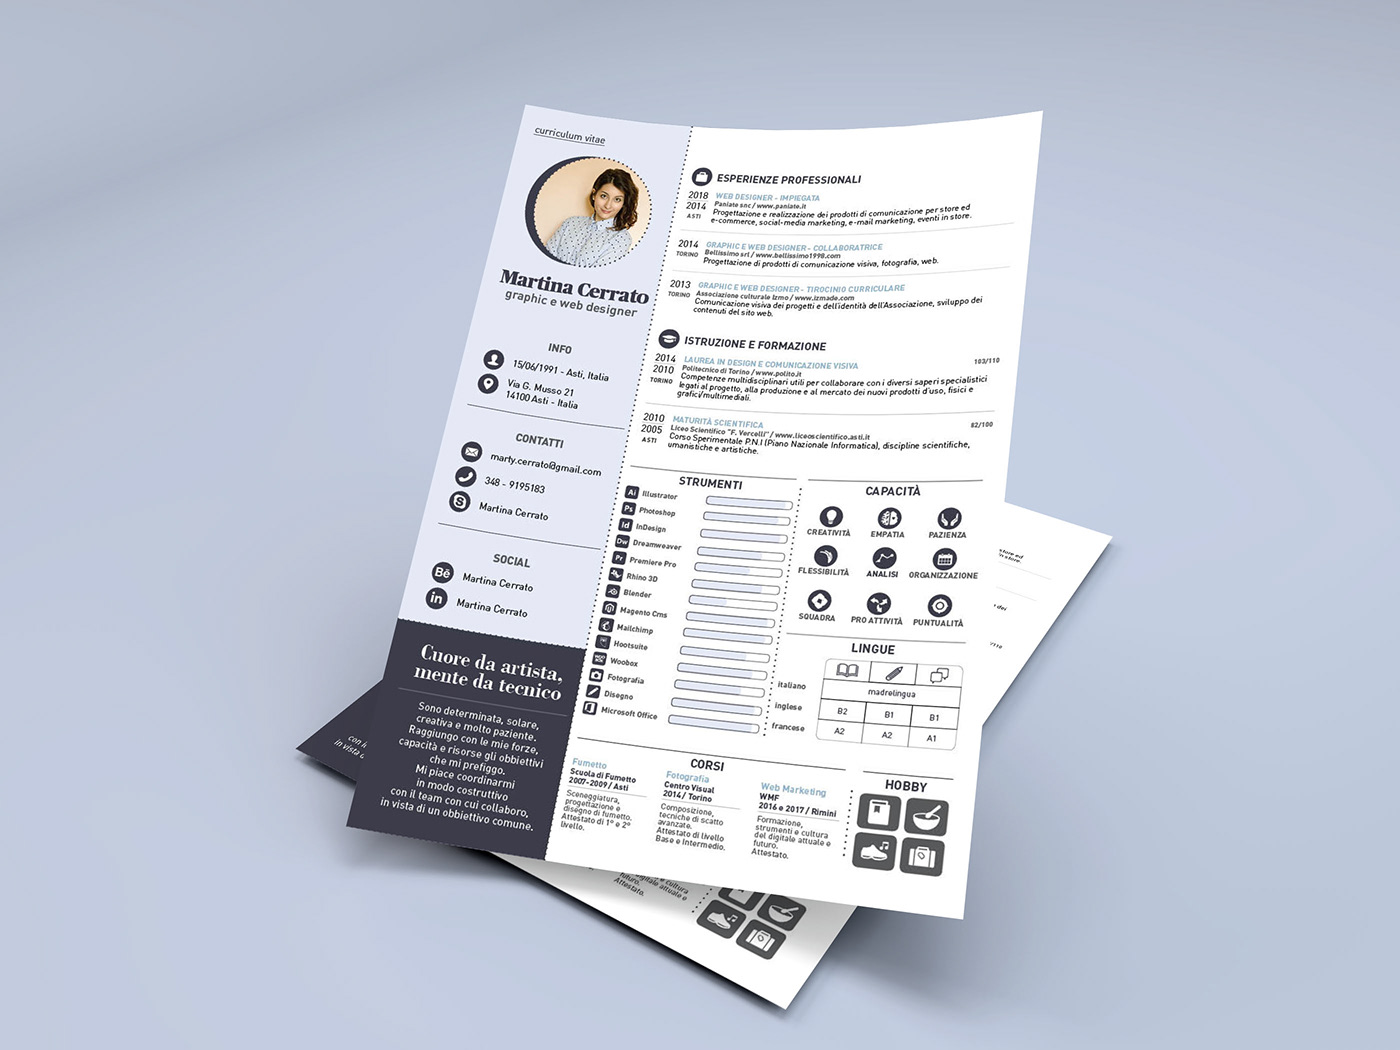 free creative resume templates for adobe indesign decolore net resumetemplate address on Resume Resume Templates For Adobe Indesign